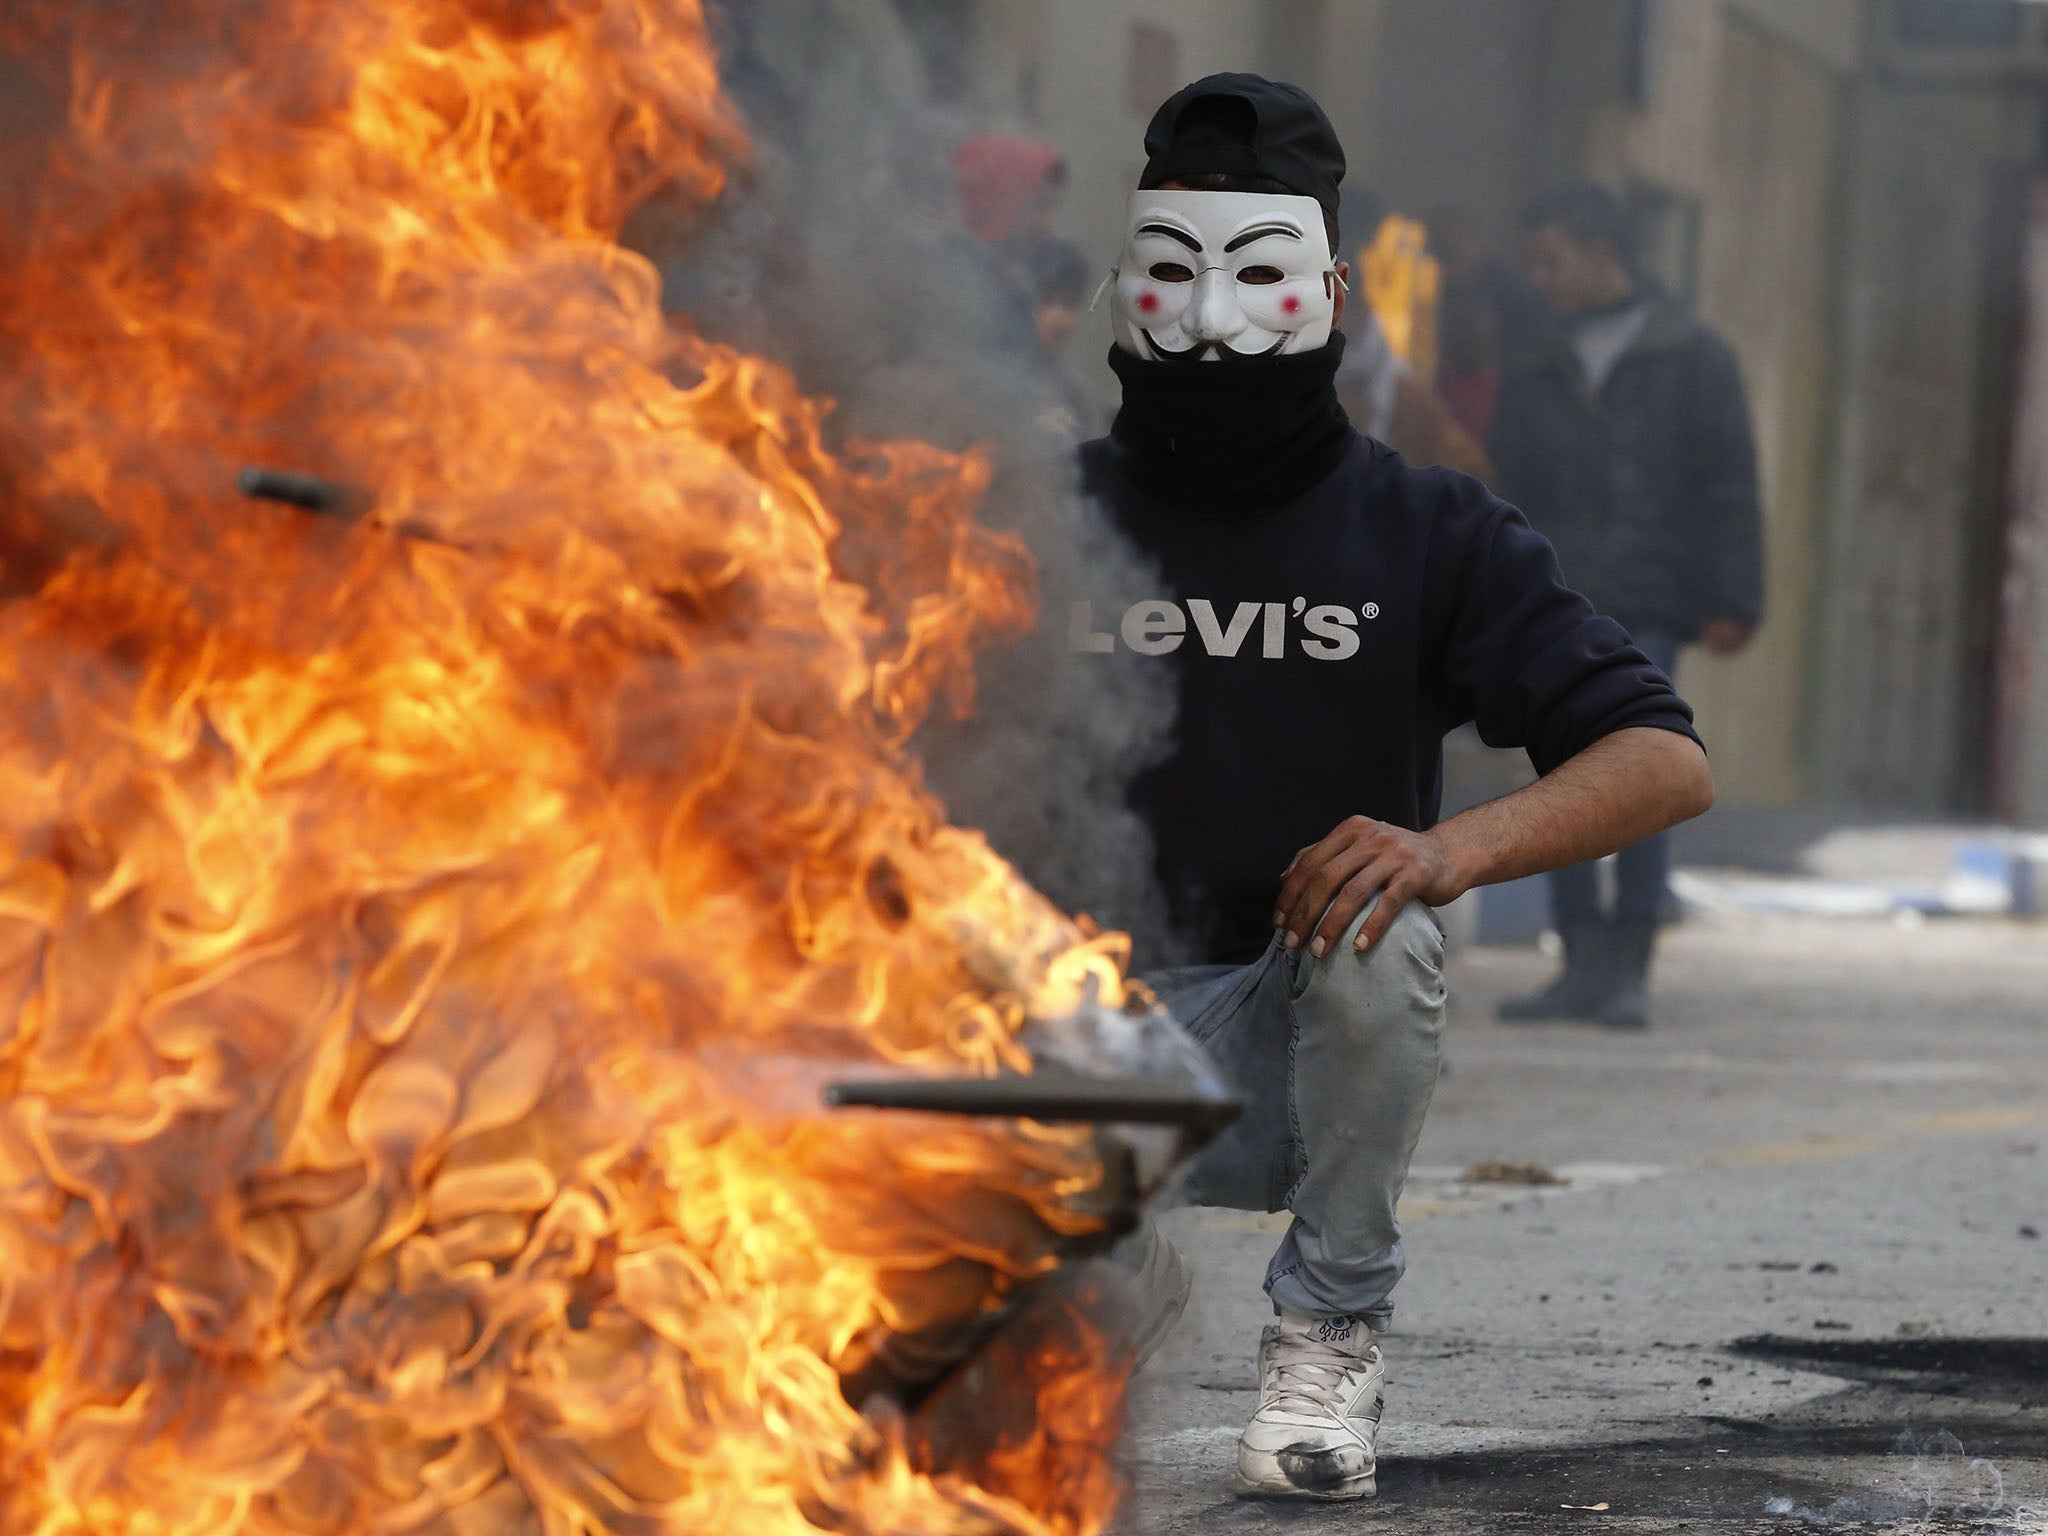 Israel passes Jewish nation law branded 'racist' by critics | The